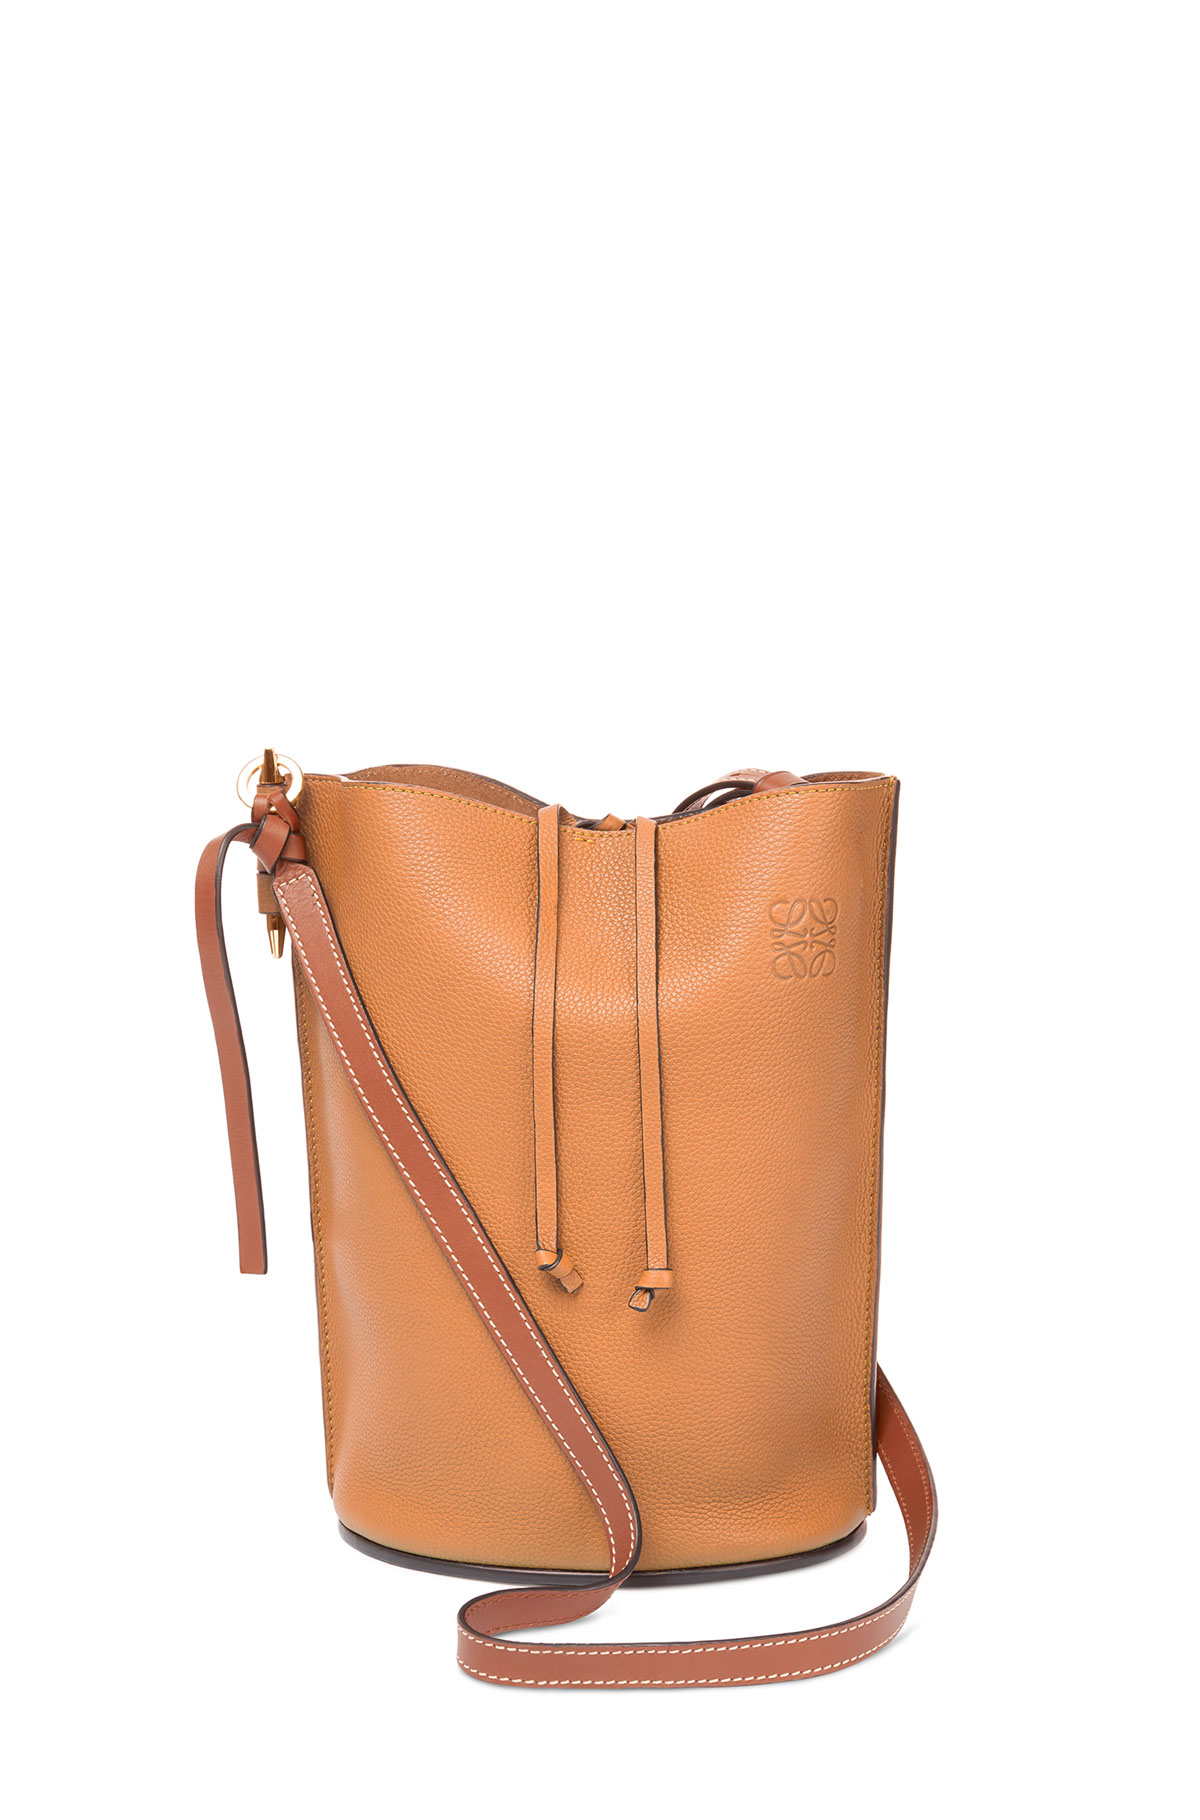 LOEWE ゲート バケット バッグ Light Caramel/Pecan Color  front